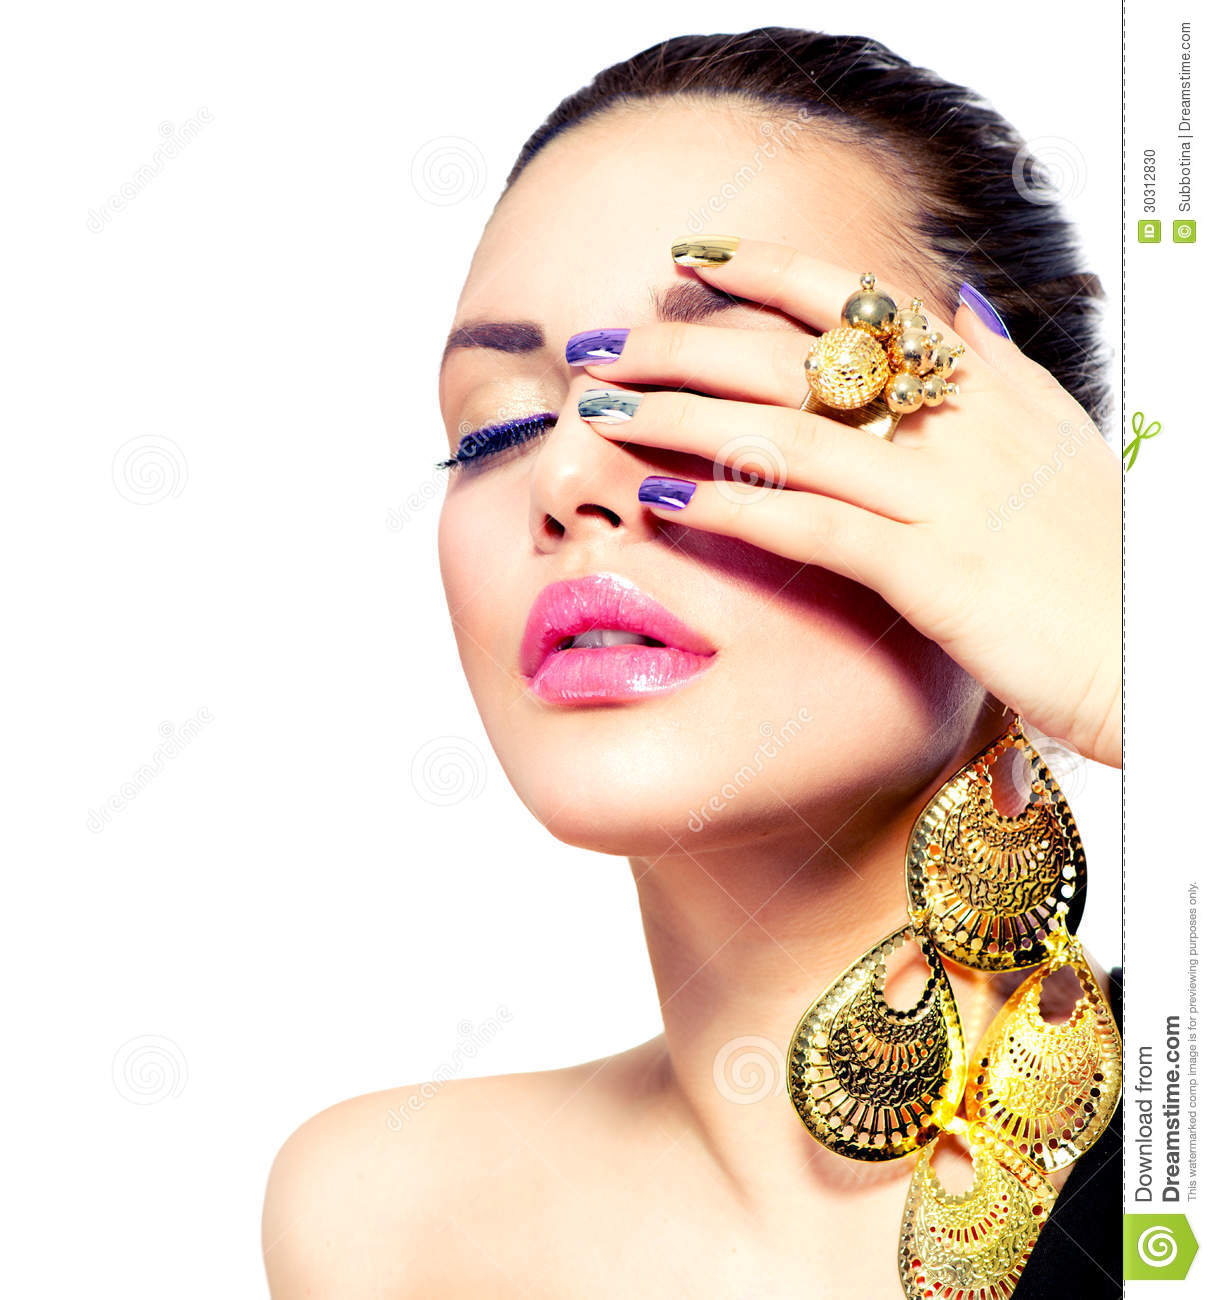 Beauty Makeup And Manicure Stock Photo Image 30312830